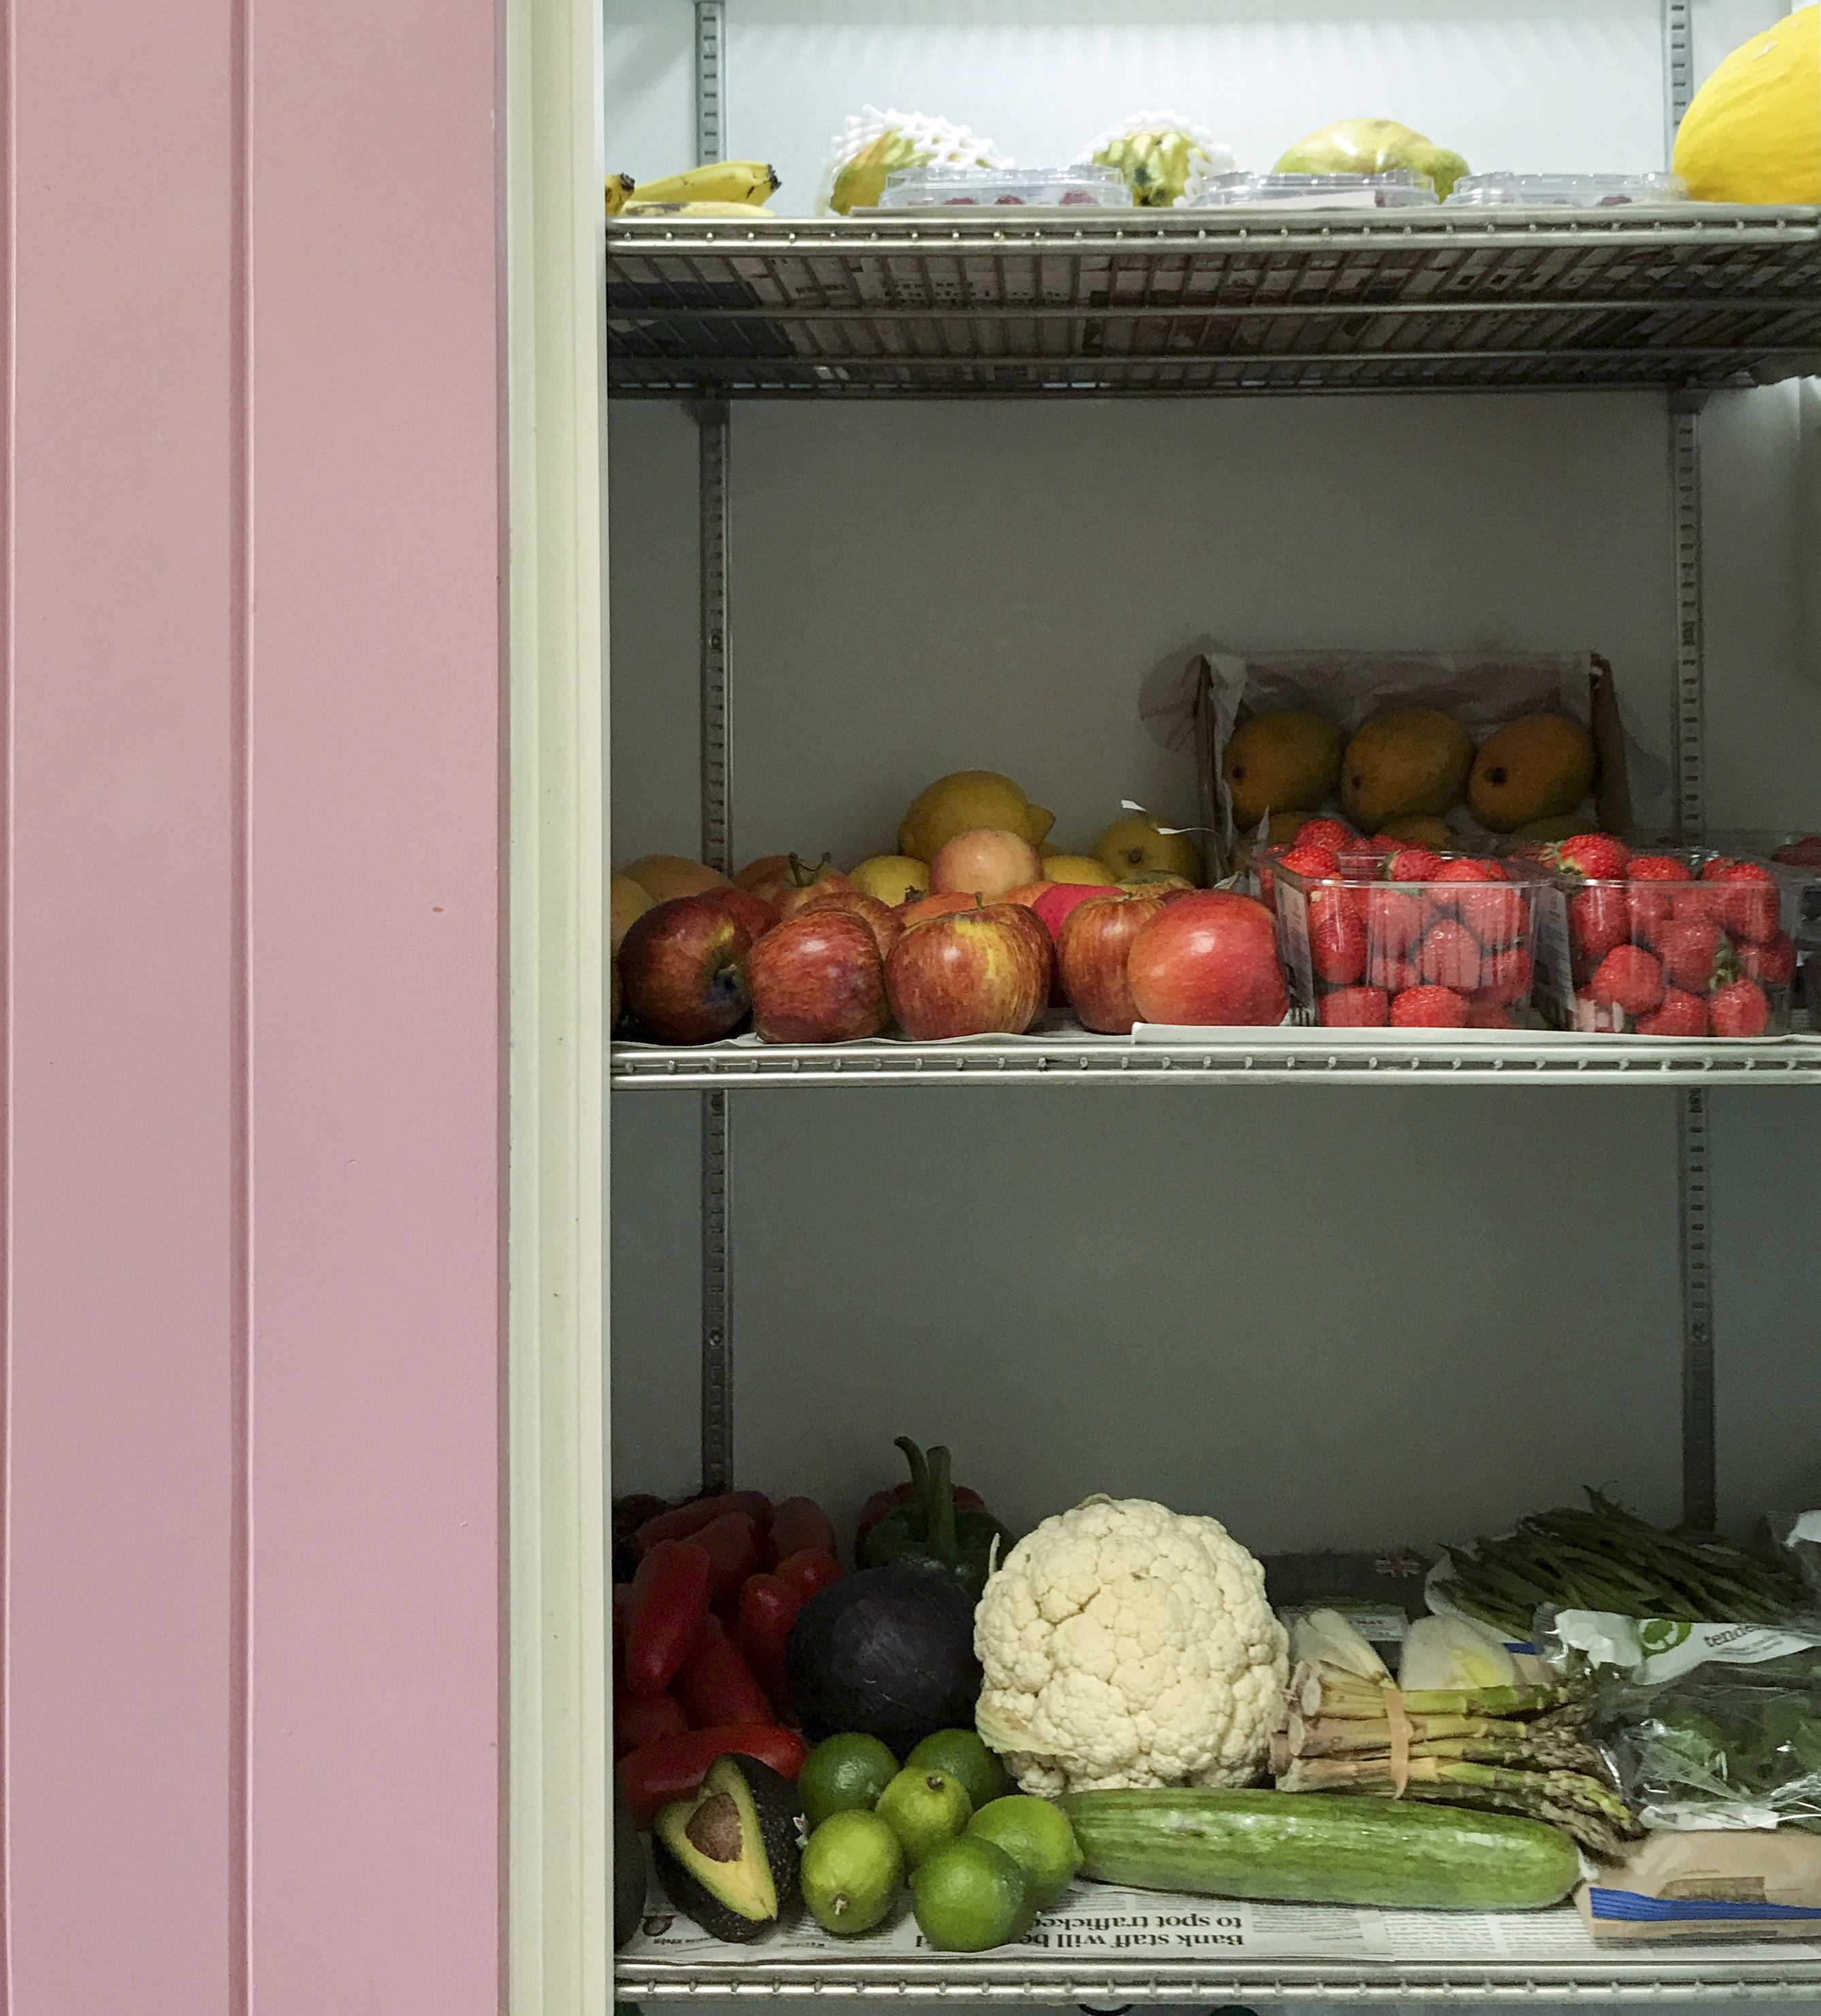 Refridgerator with fruits and vegetables